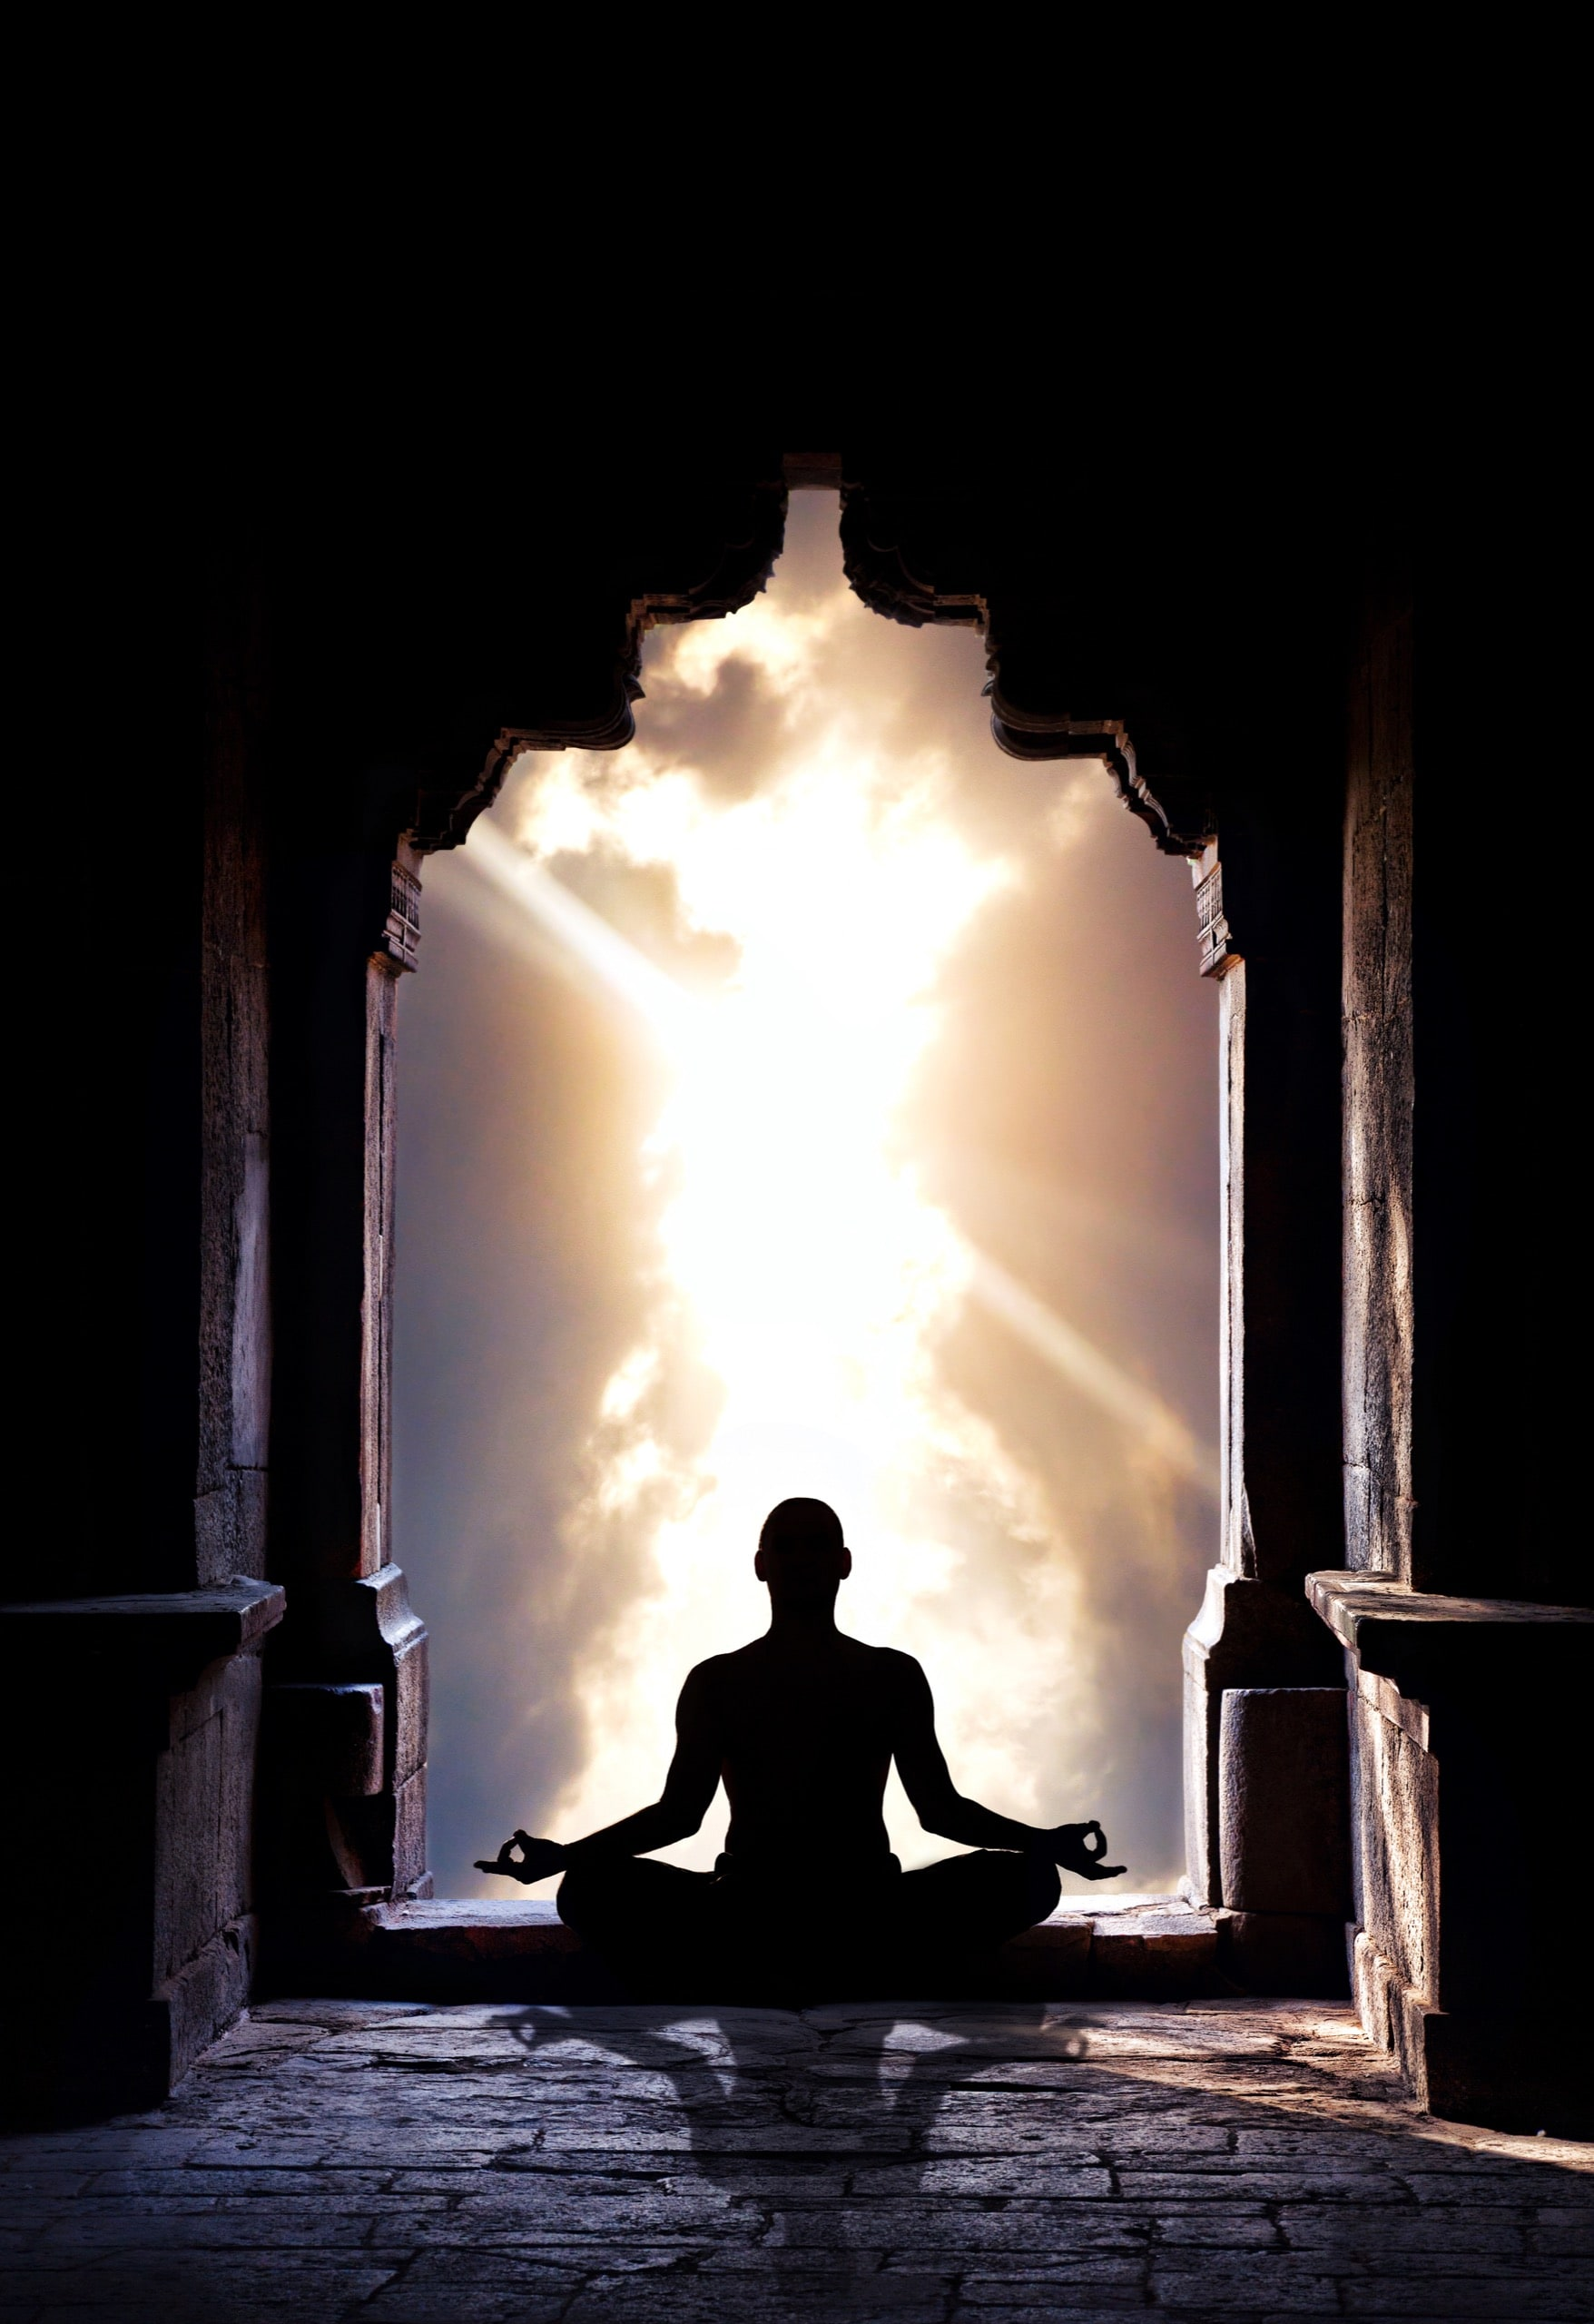 Yoga meditation in lotus pose by man silhouette in old temple arch at dramatic sky background. Free space for text